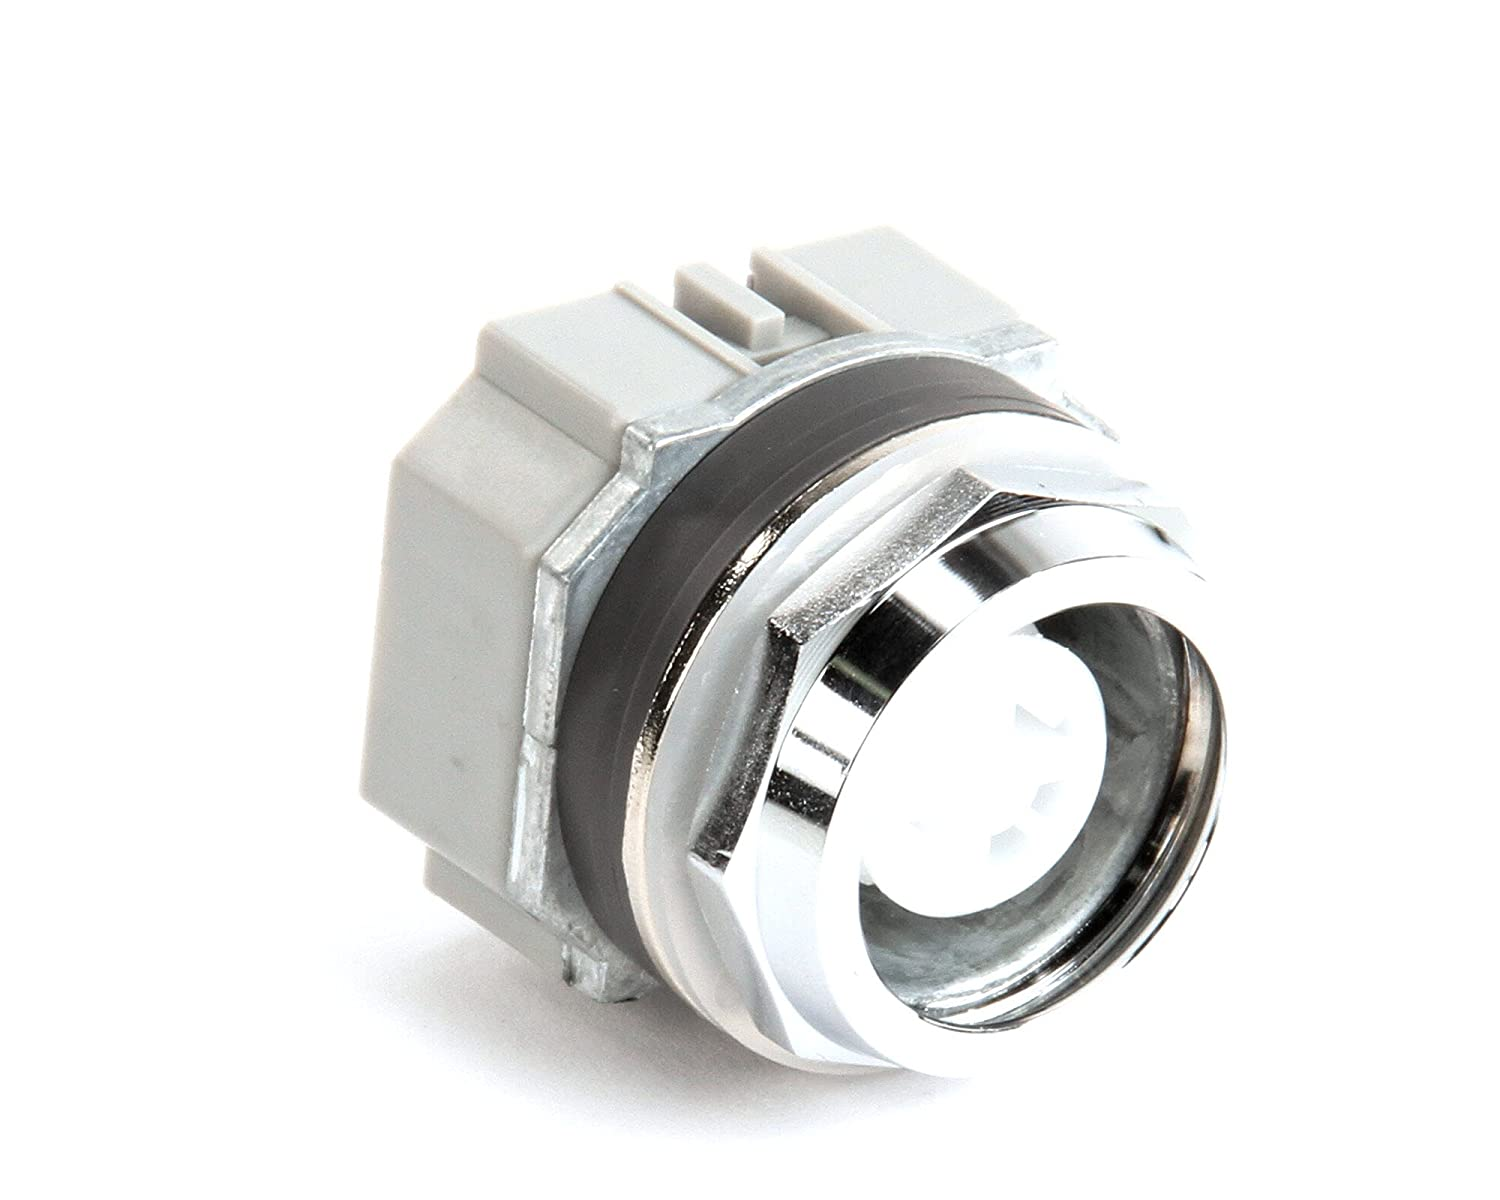 Manufacturer direct delivery Nippon regular agency Stero Dishwasher P49-1307 Selector Position 3 Switch